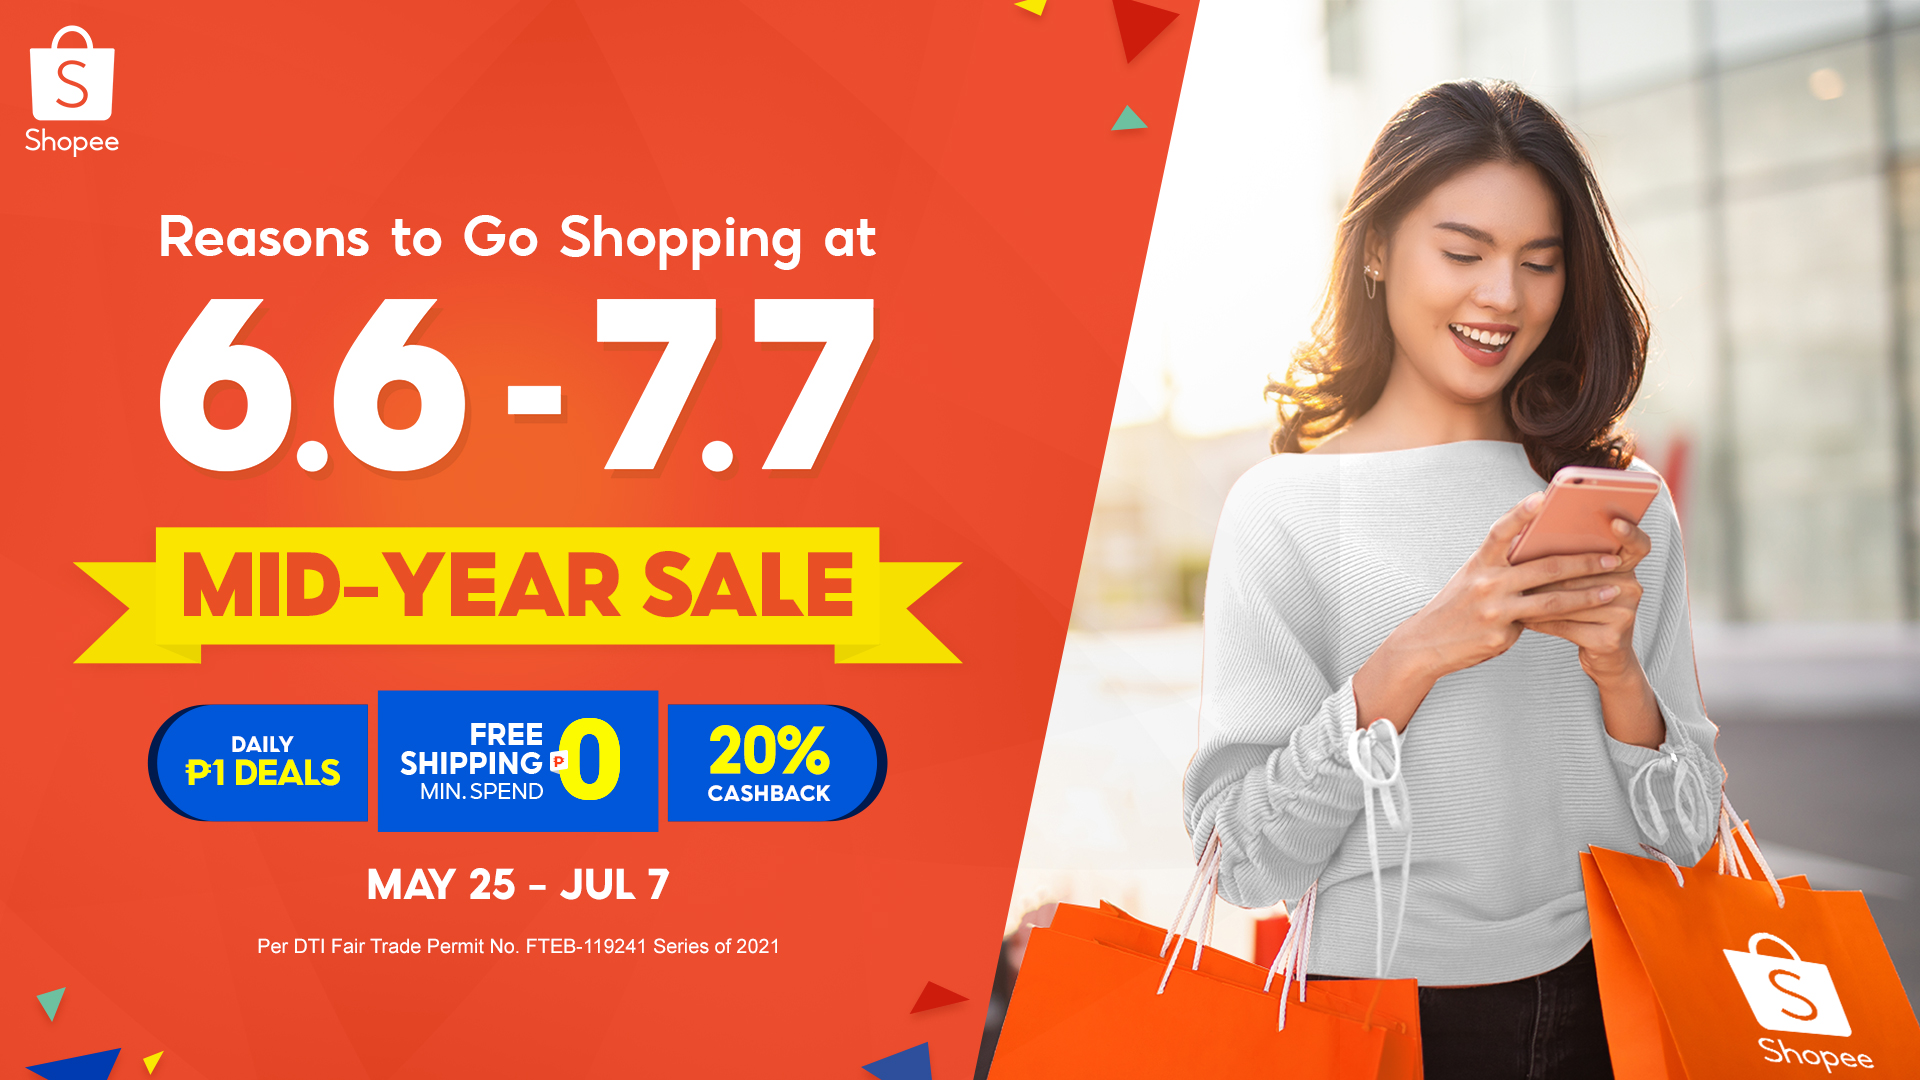 6 Reasons to go on a Shopping Spree at Shopee's 6.6 - 7.7 Mid-Year Sale